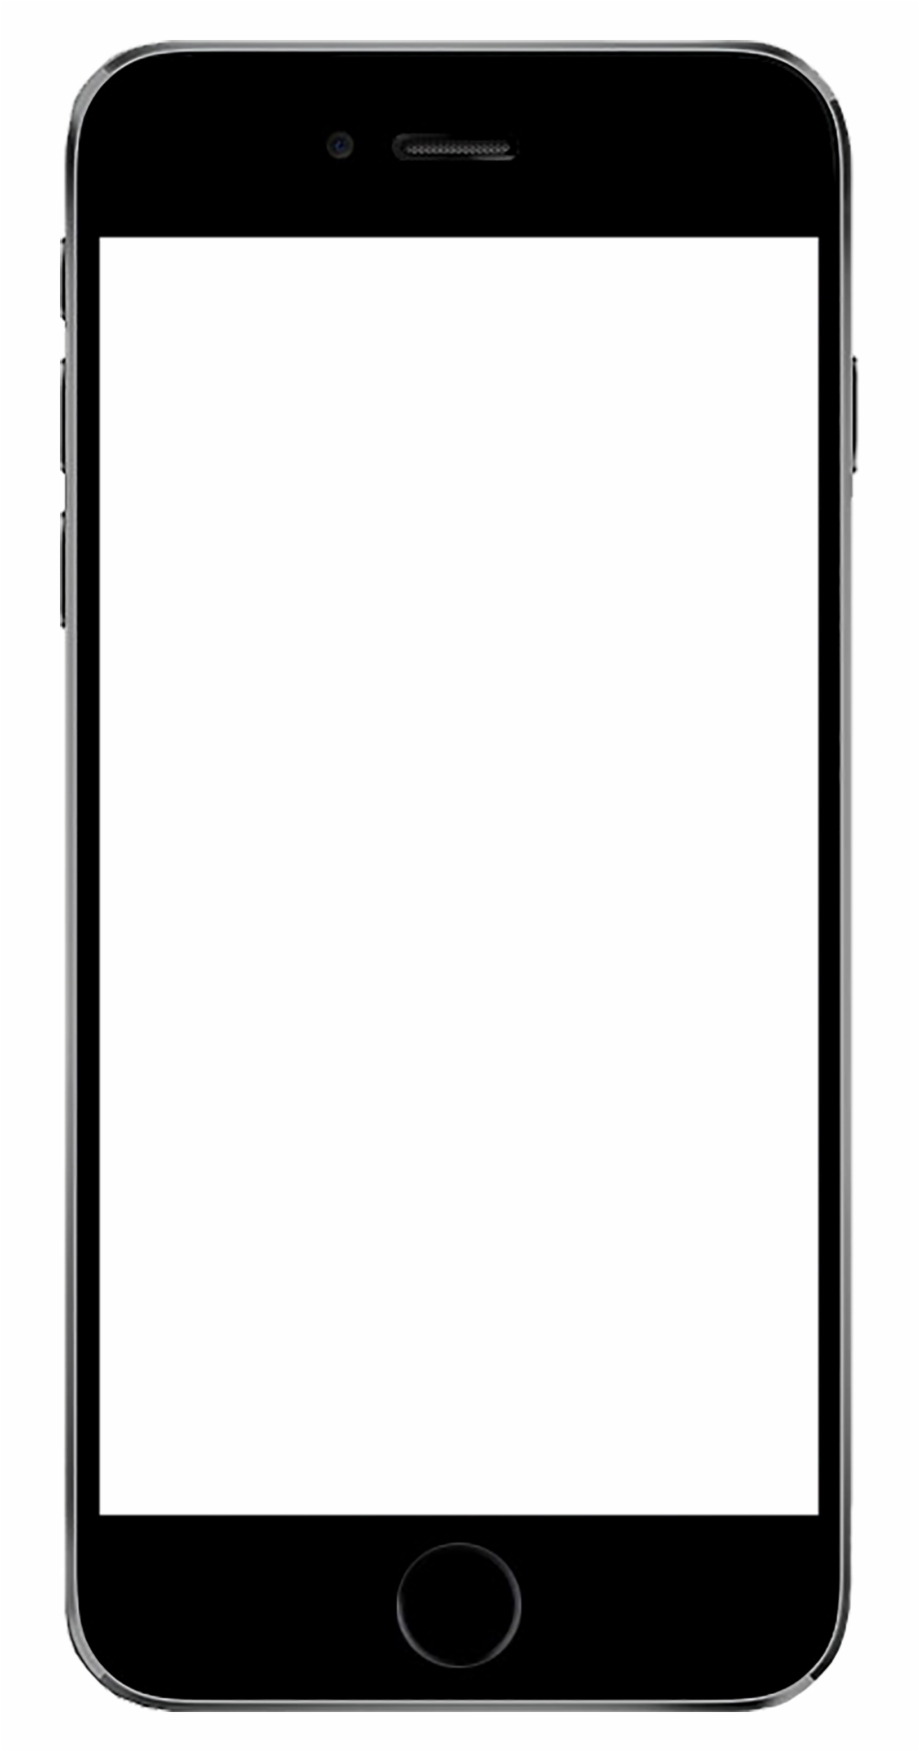 White Iphone 4 Png.